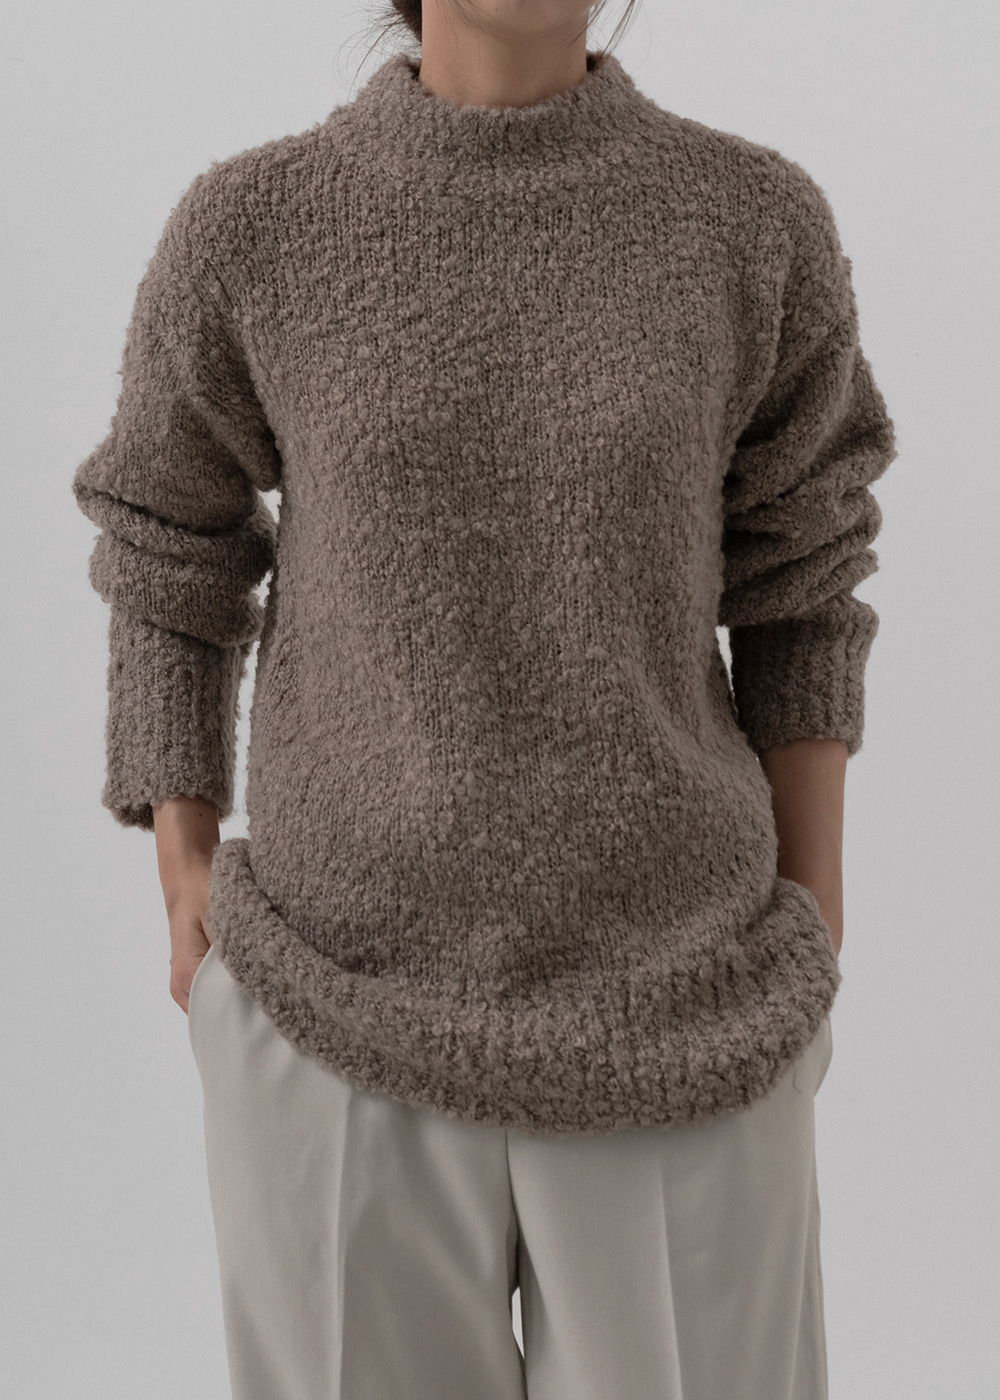 [MORE THAN YESTERDAY] Bookle knitwear